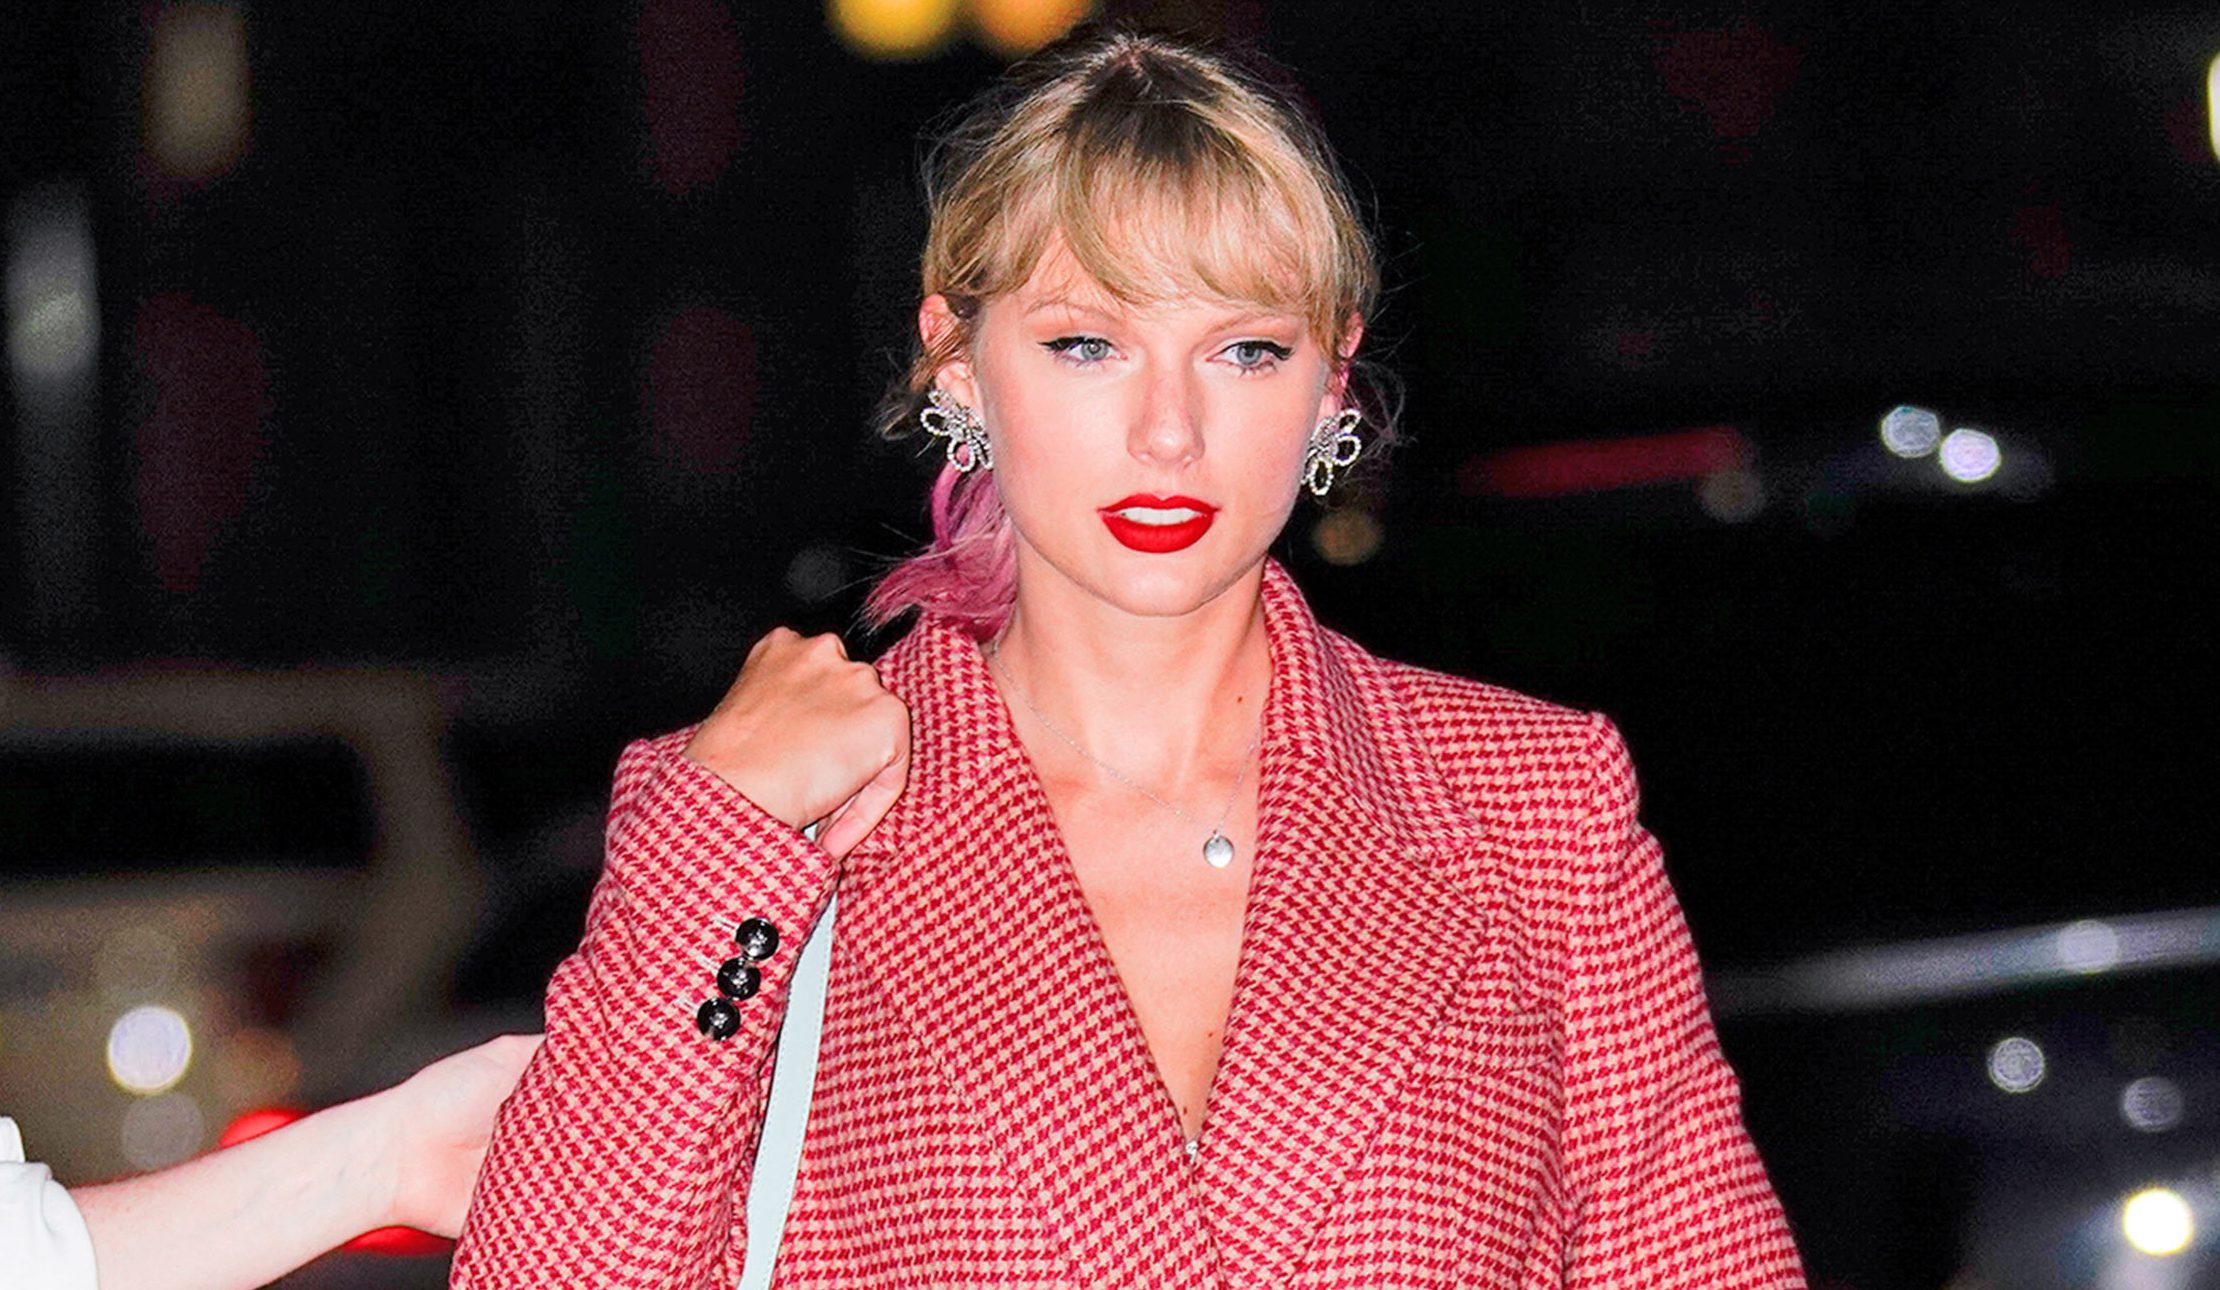 Taylor Swift attends Gigi Hadid's denim themed birthday party in floral dress